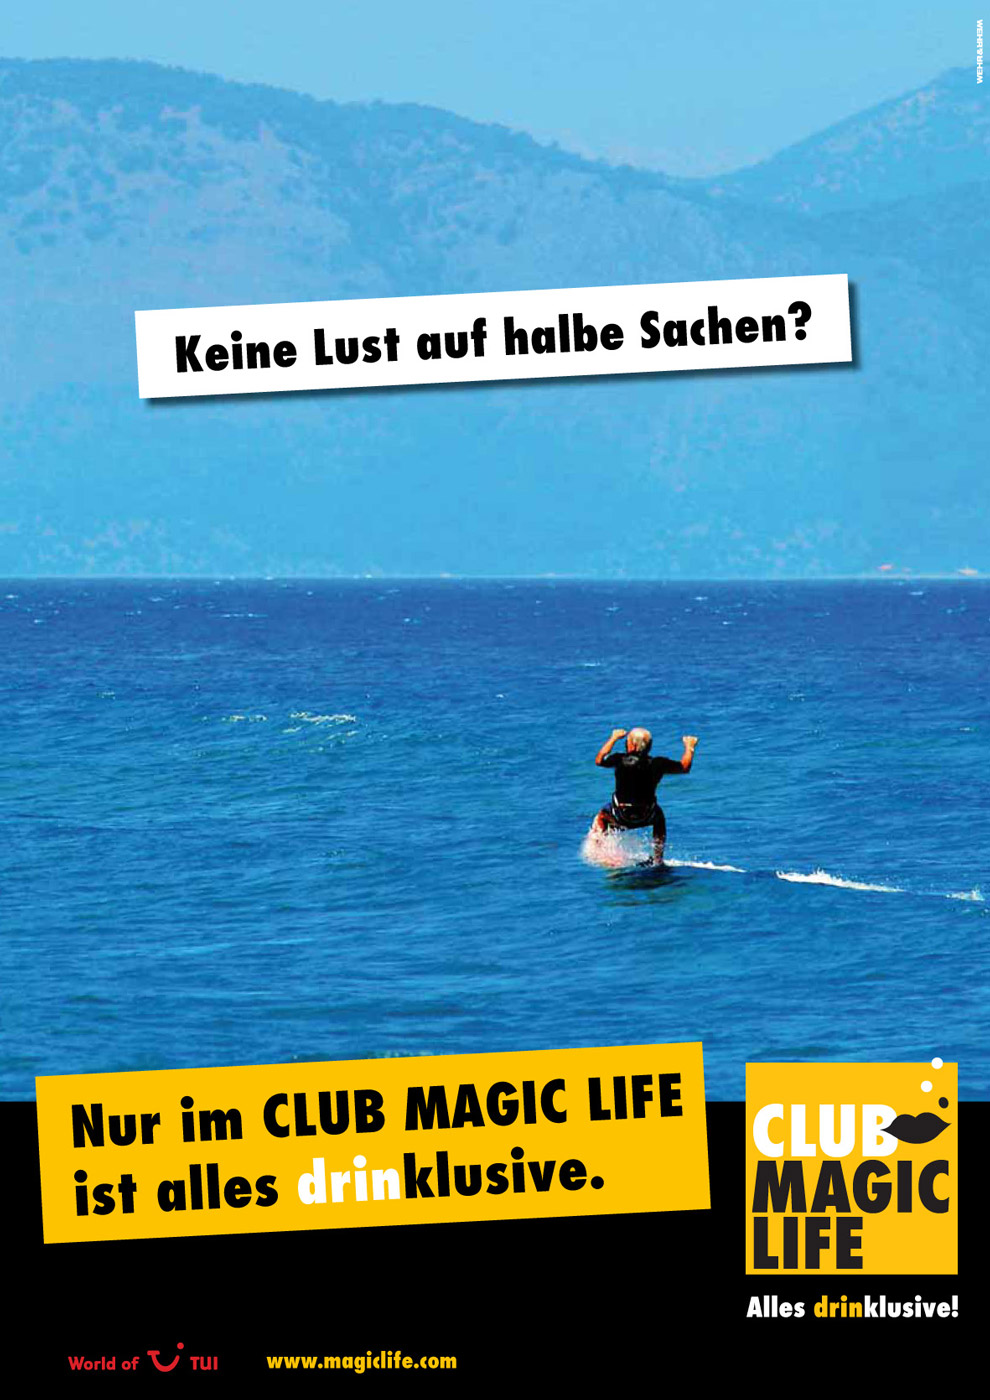 magiclife-kampagne-1